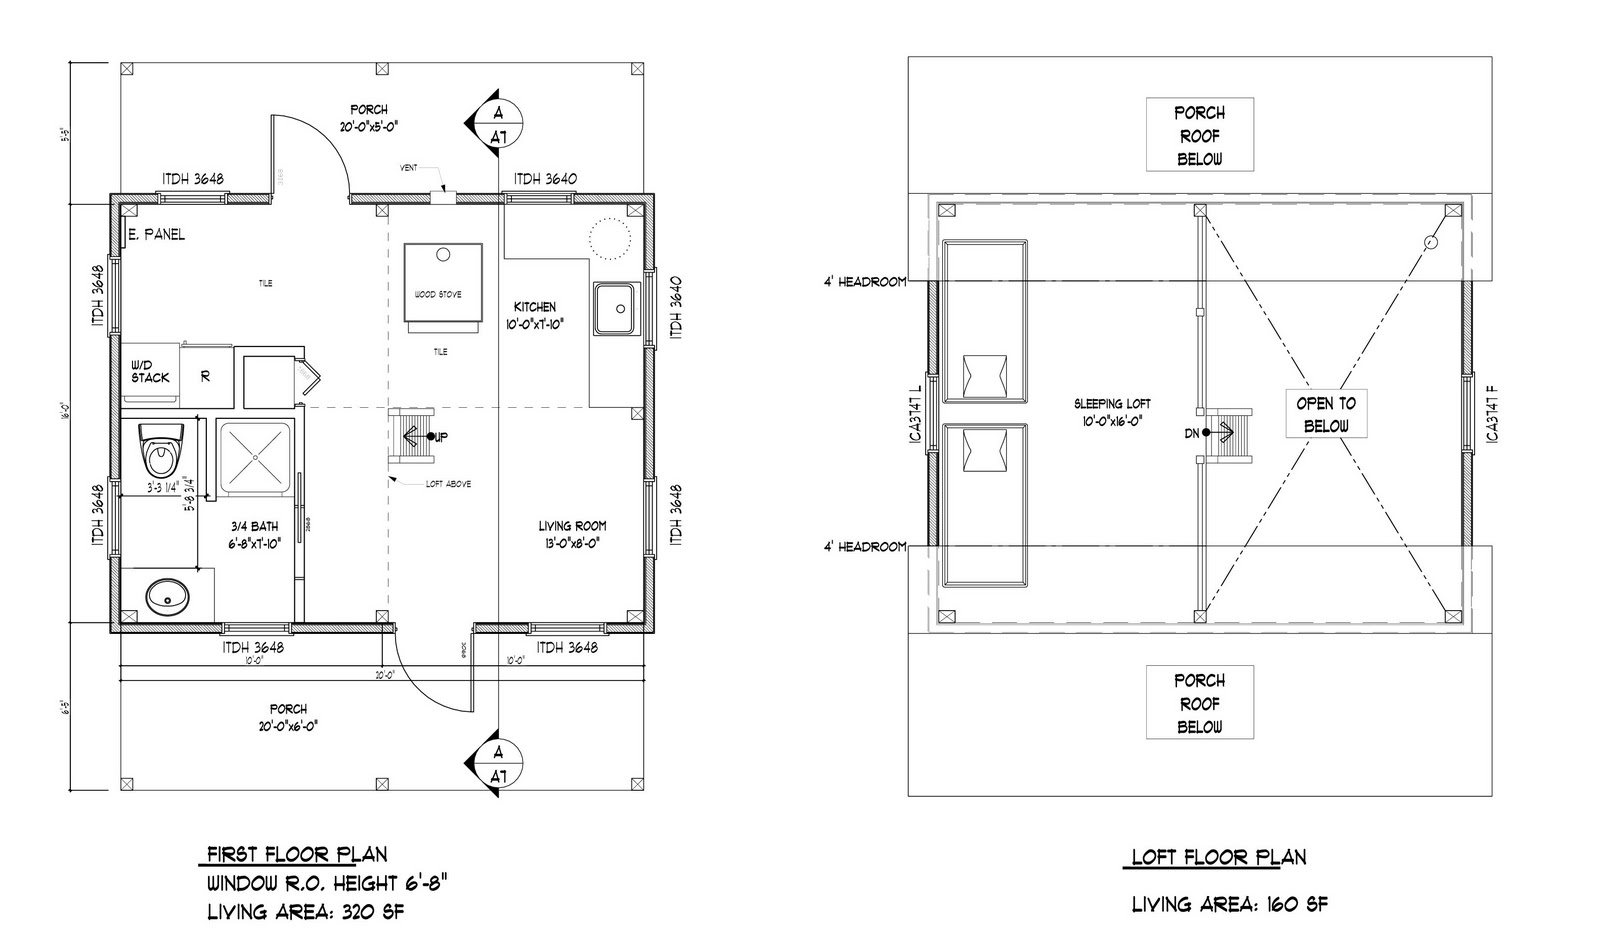 16 x 16 2 story cabin floor plans joy studio design for 10 x 20 cabin plans